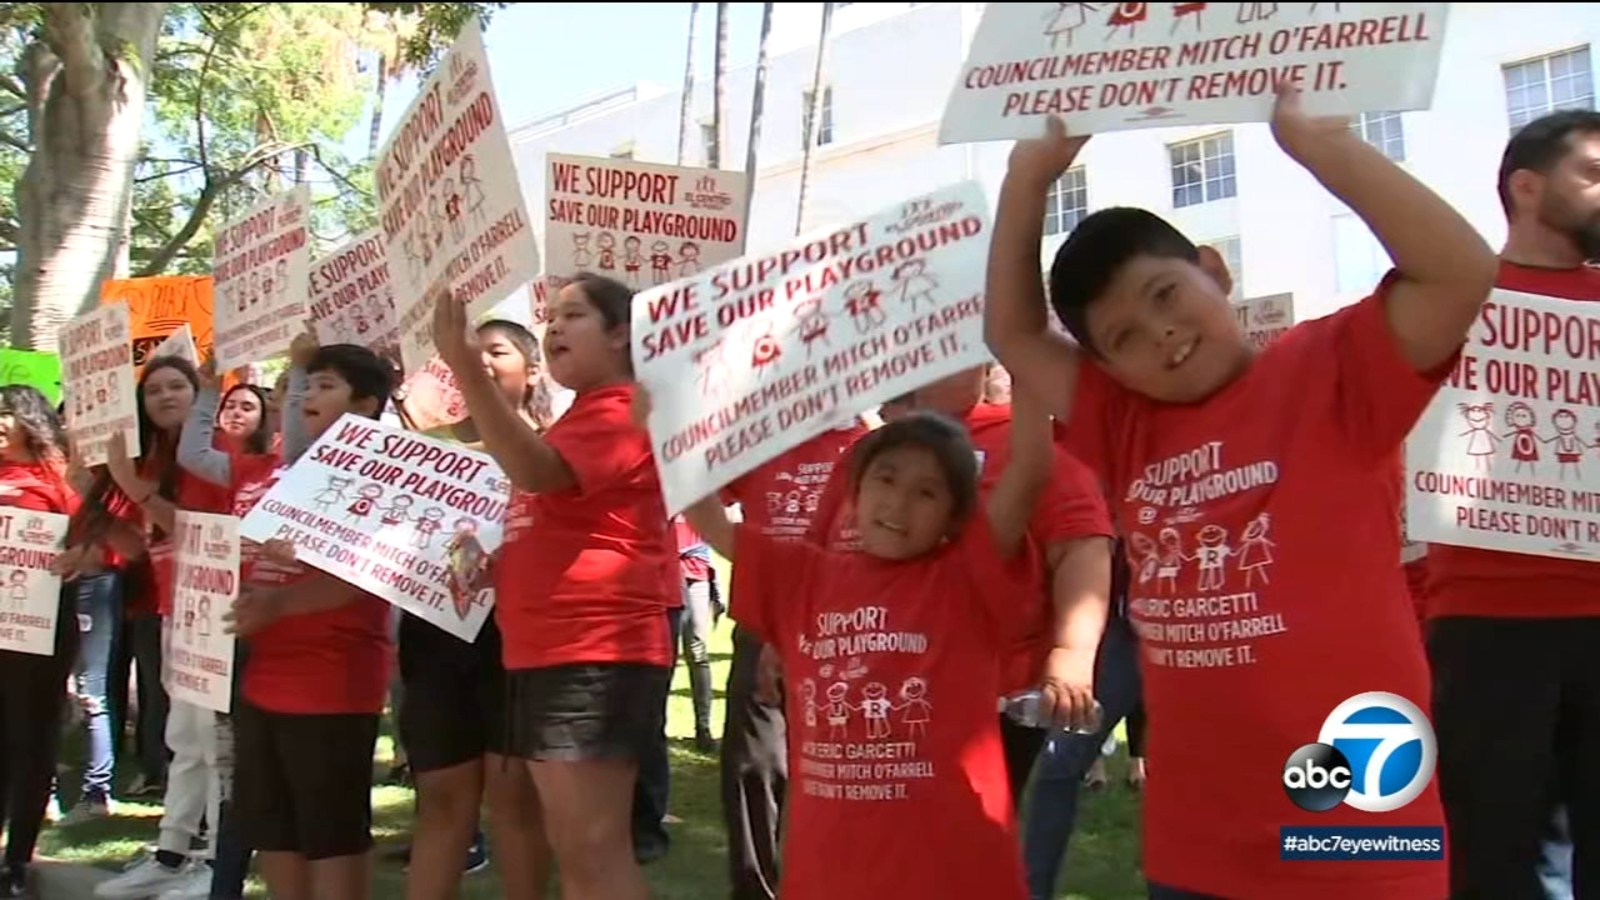 Echo Park residents urge city officials to save recreation area for at-risk youth